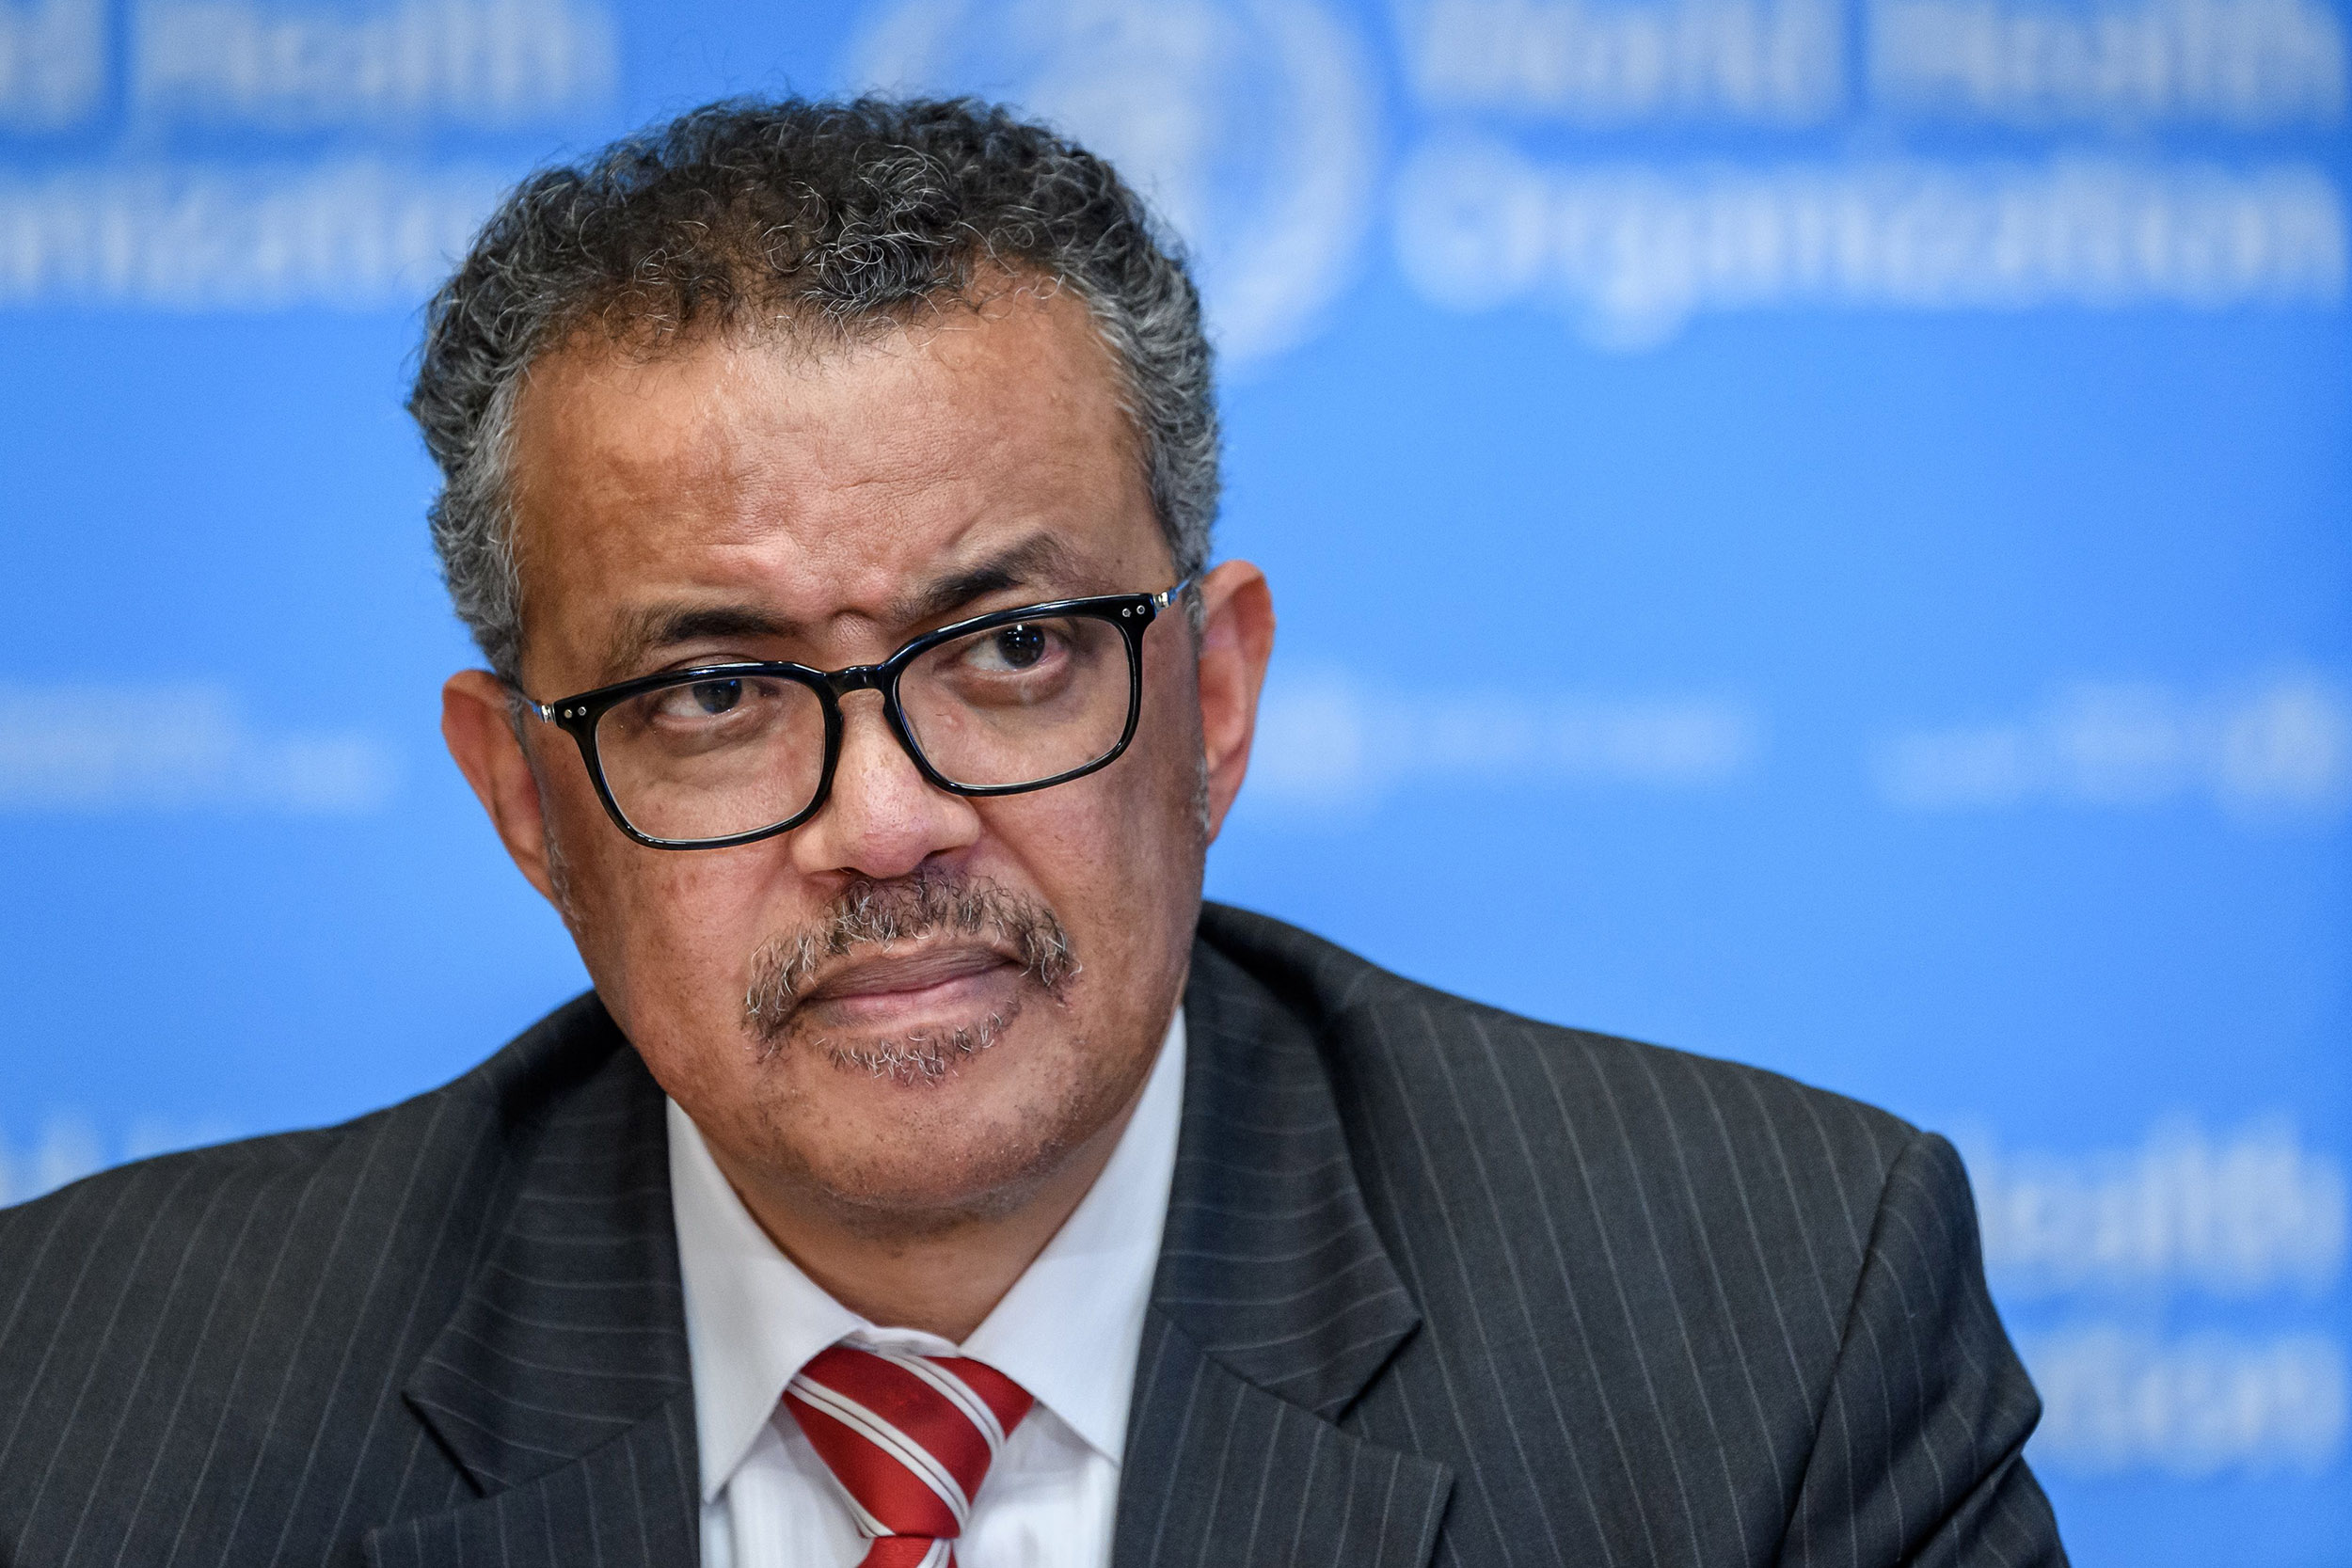 WHO Director-General Tedros Adhanom Ghebreyesus attends a Covid-19 press briefing at the agency's HQ in Geneva, Switzerland, on March 11.